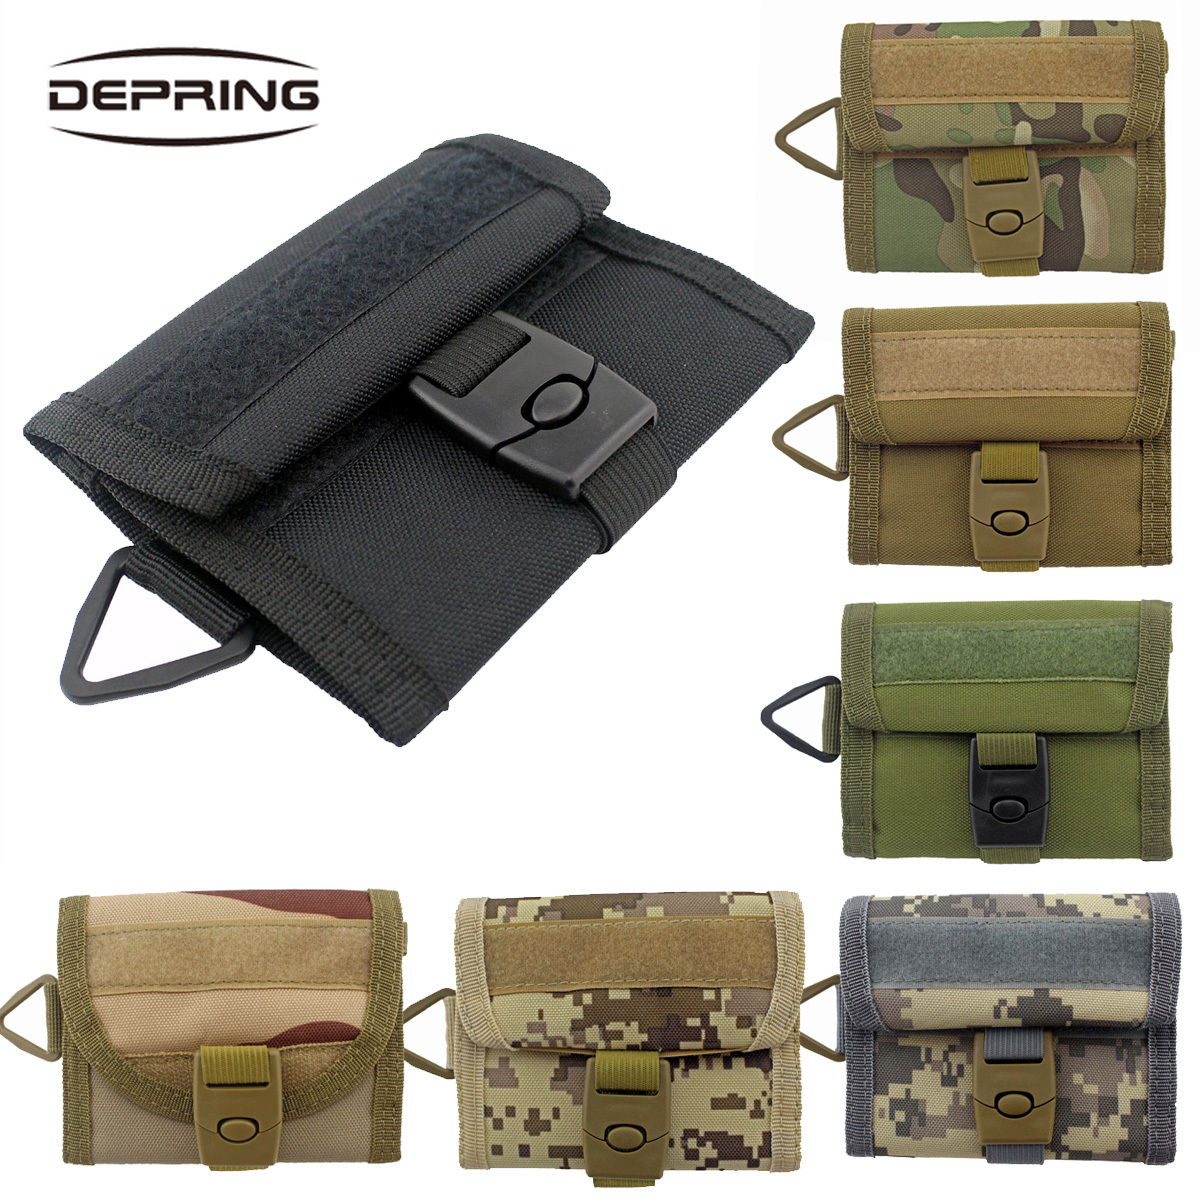 7 Colors New Arrival 800D Nylon Military Outdoor Sports Wallet Purse Mesh Pocket Hook Loop and Buckle Cloure <font><b>Tactical</b></font> <font><b>Molle</b></font> Bag image